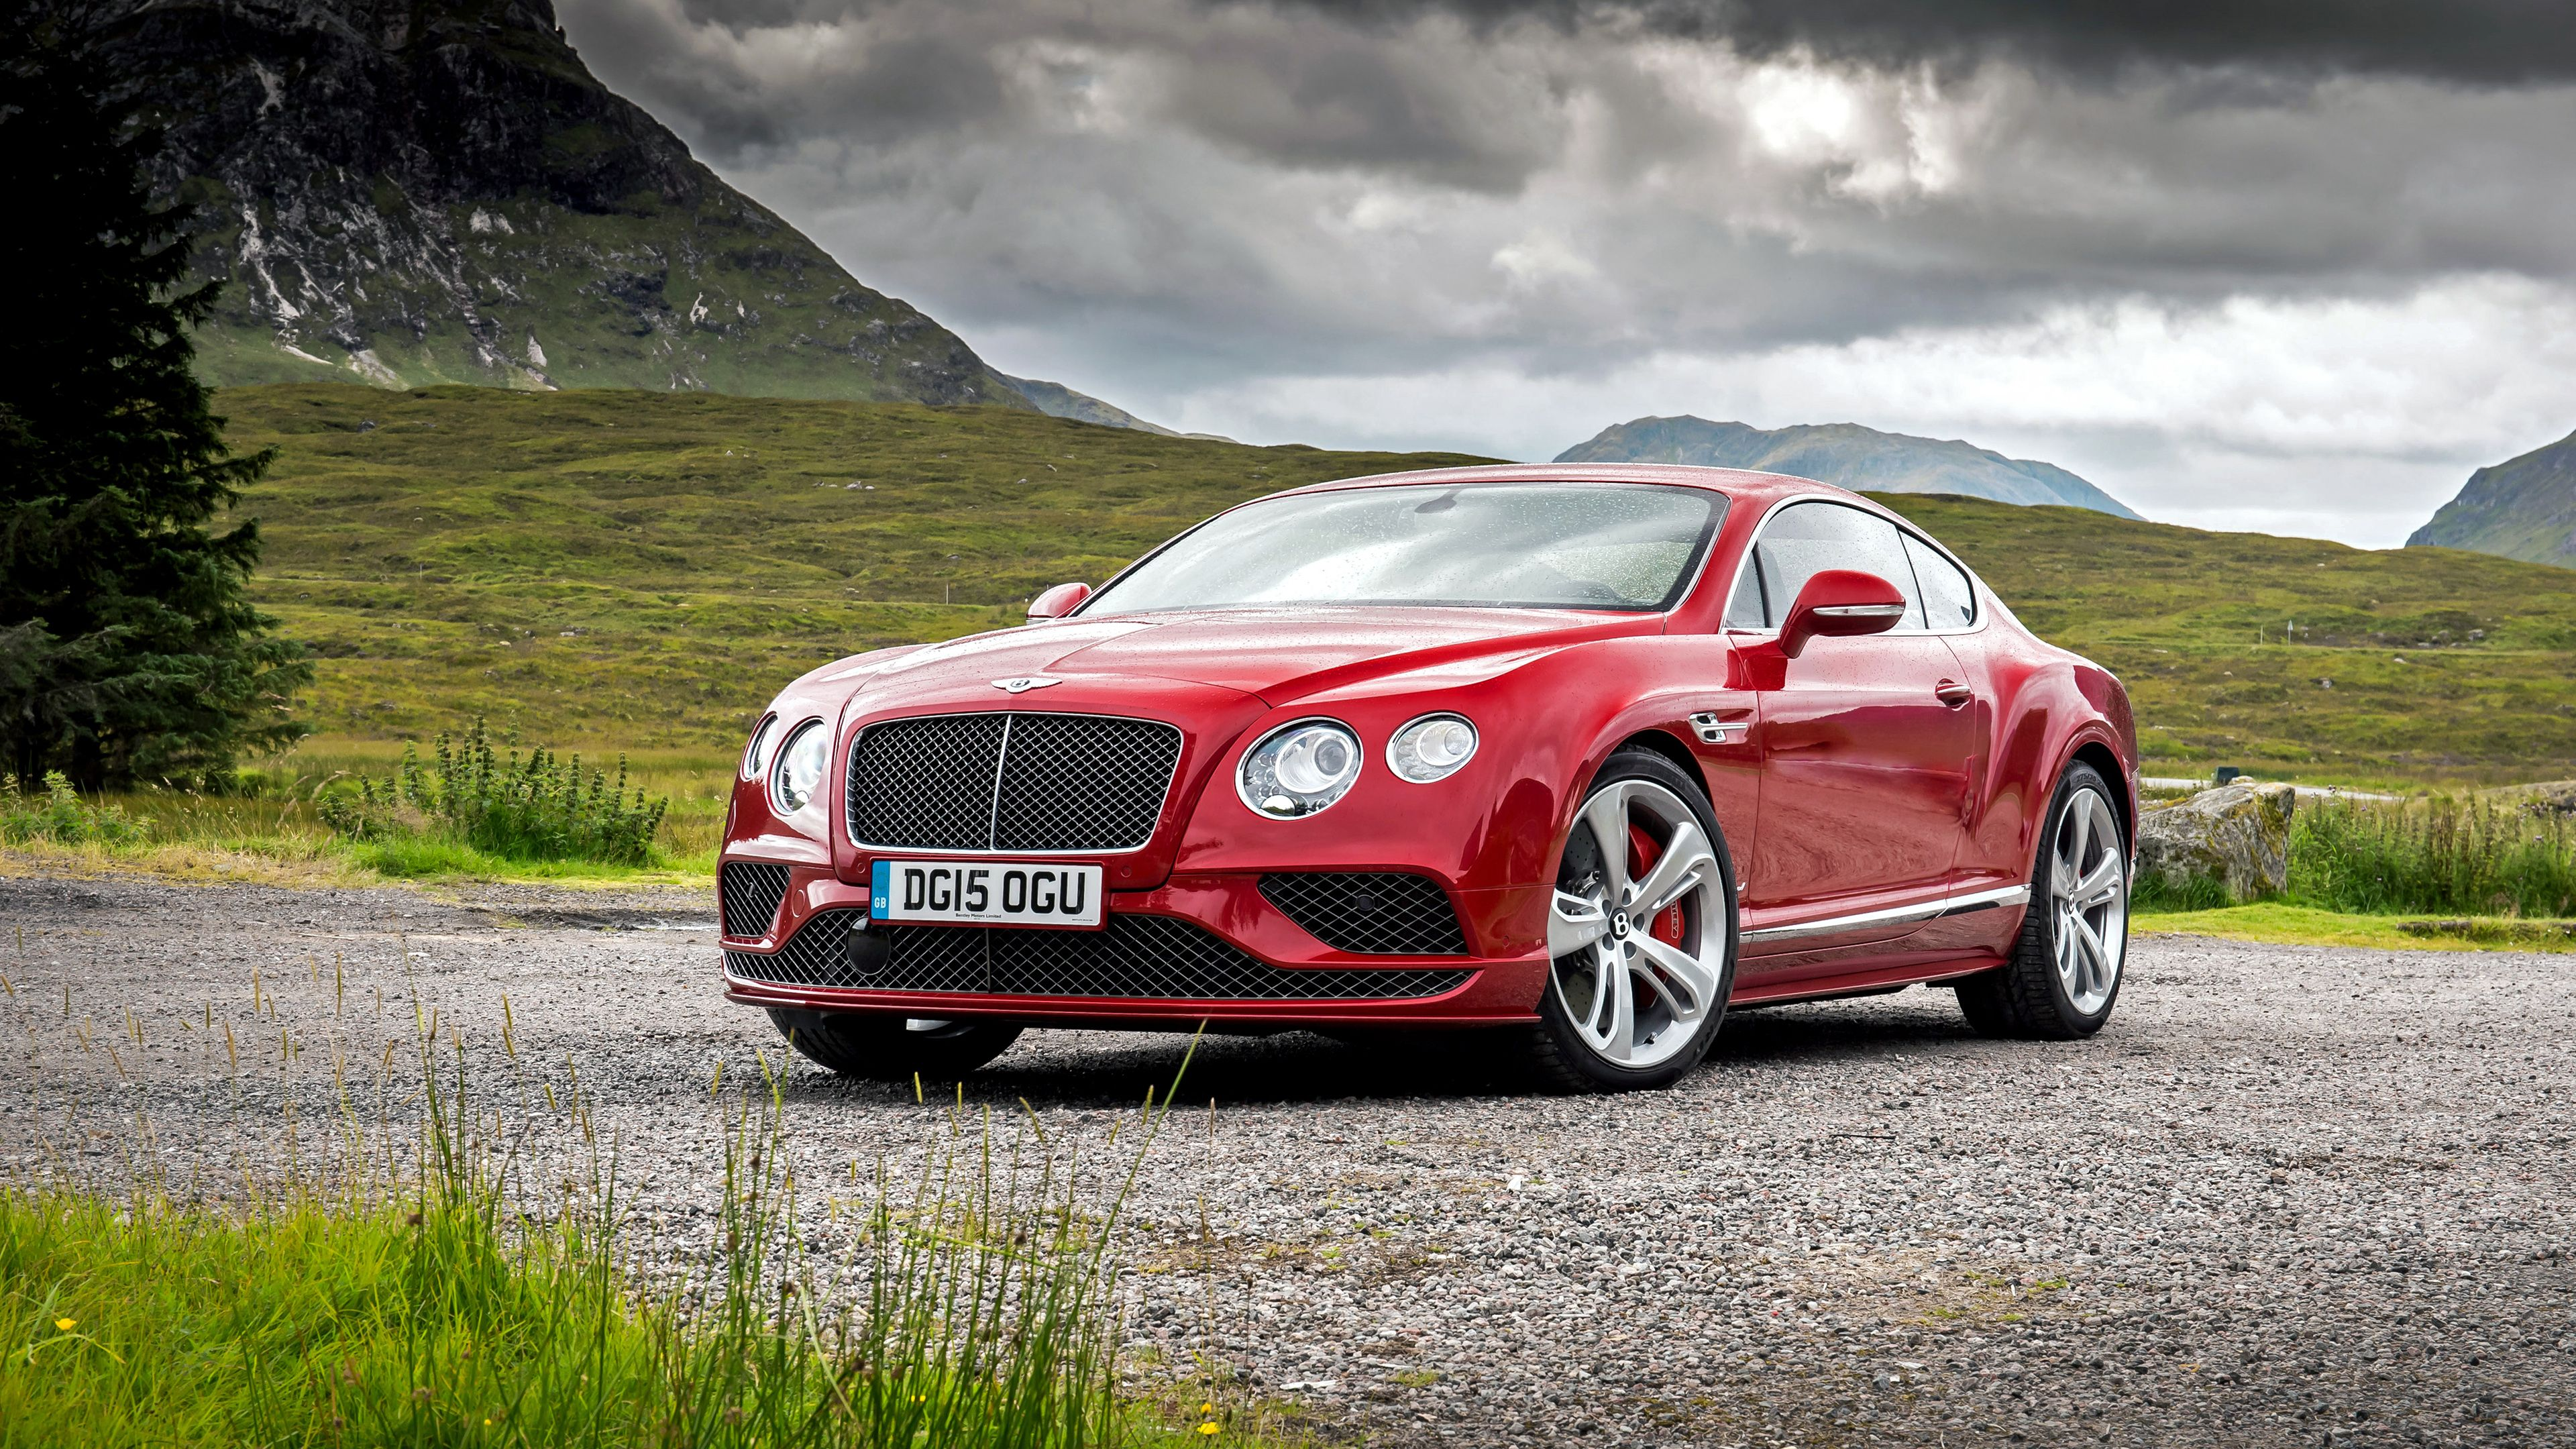 Bentley Continental GT 2015 Wallpaper | HD Car Wallpapers